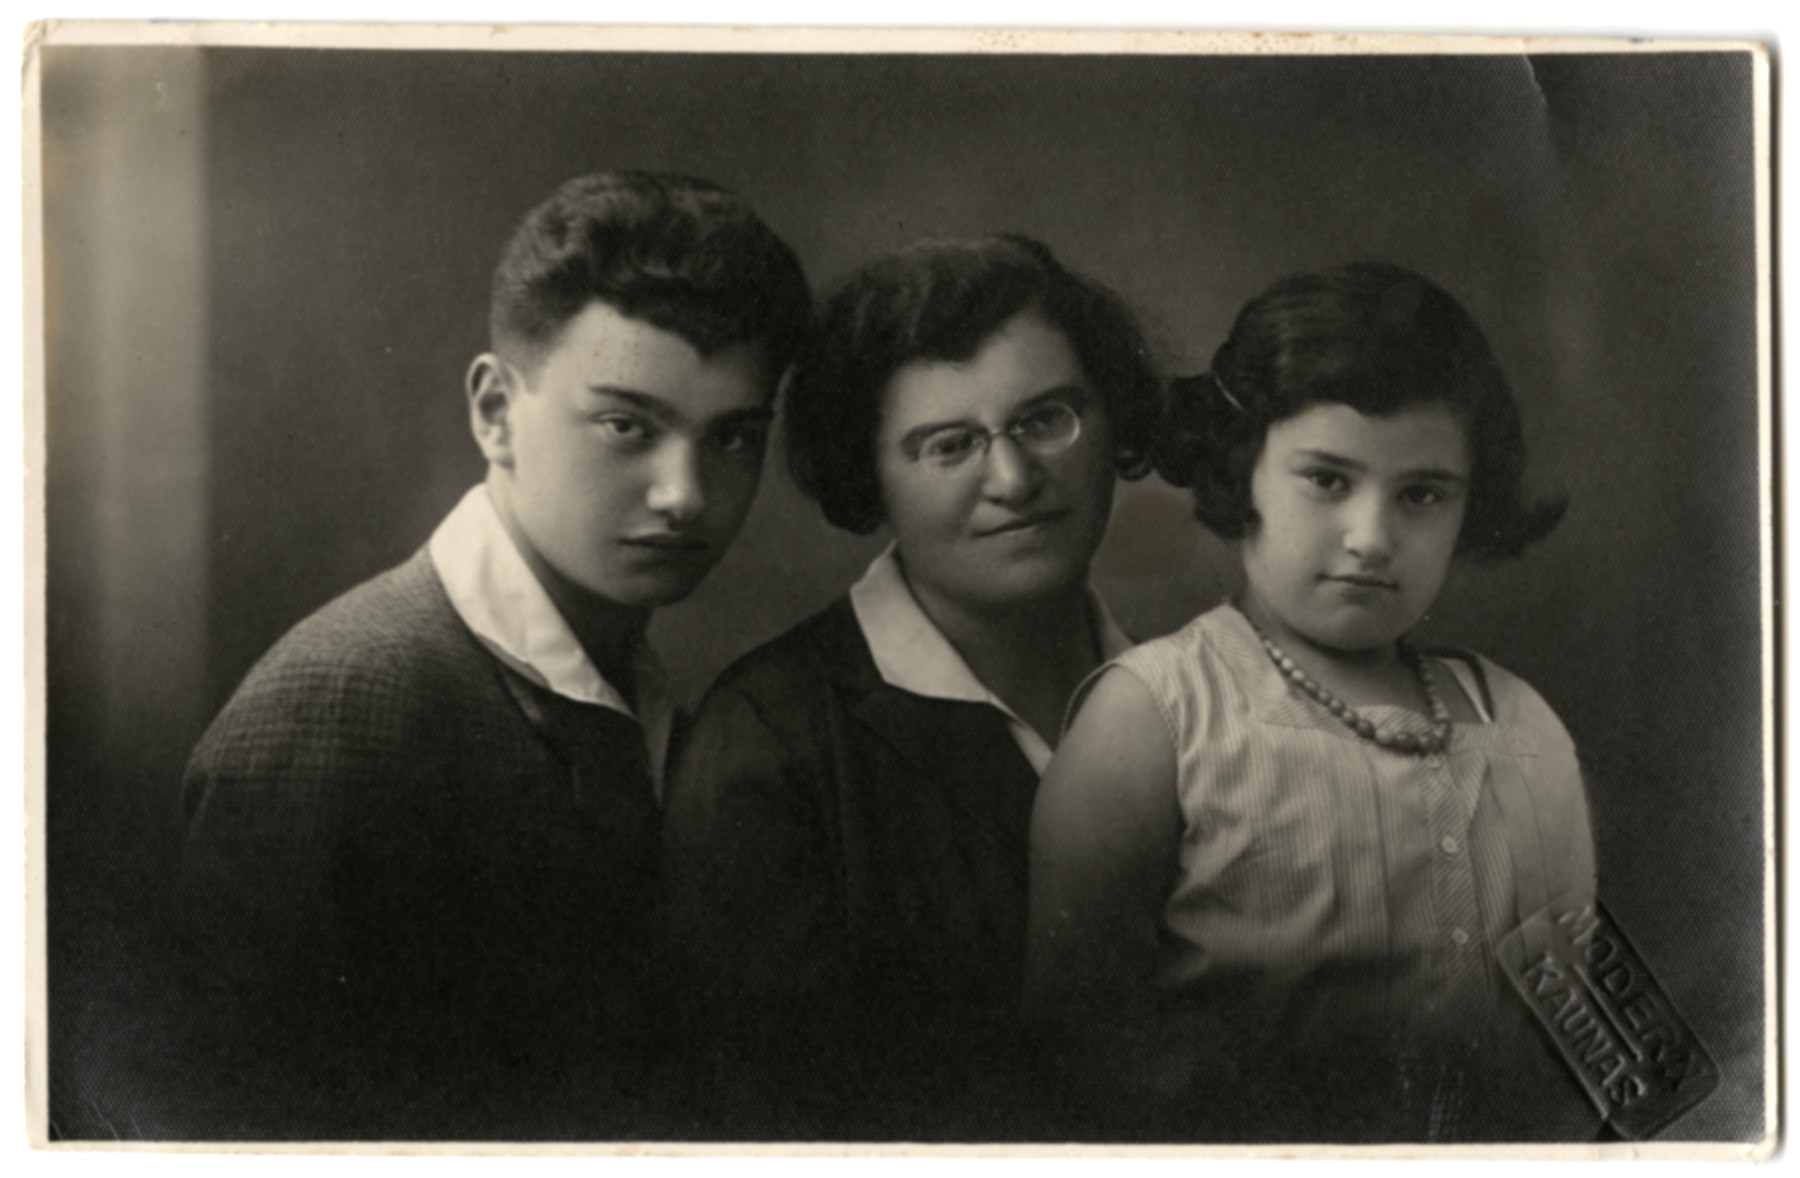 Portrait of the Elkes family in prewar Kaunas.  Miriam Elkes is flanked by her two children, Joel and Sarah.